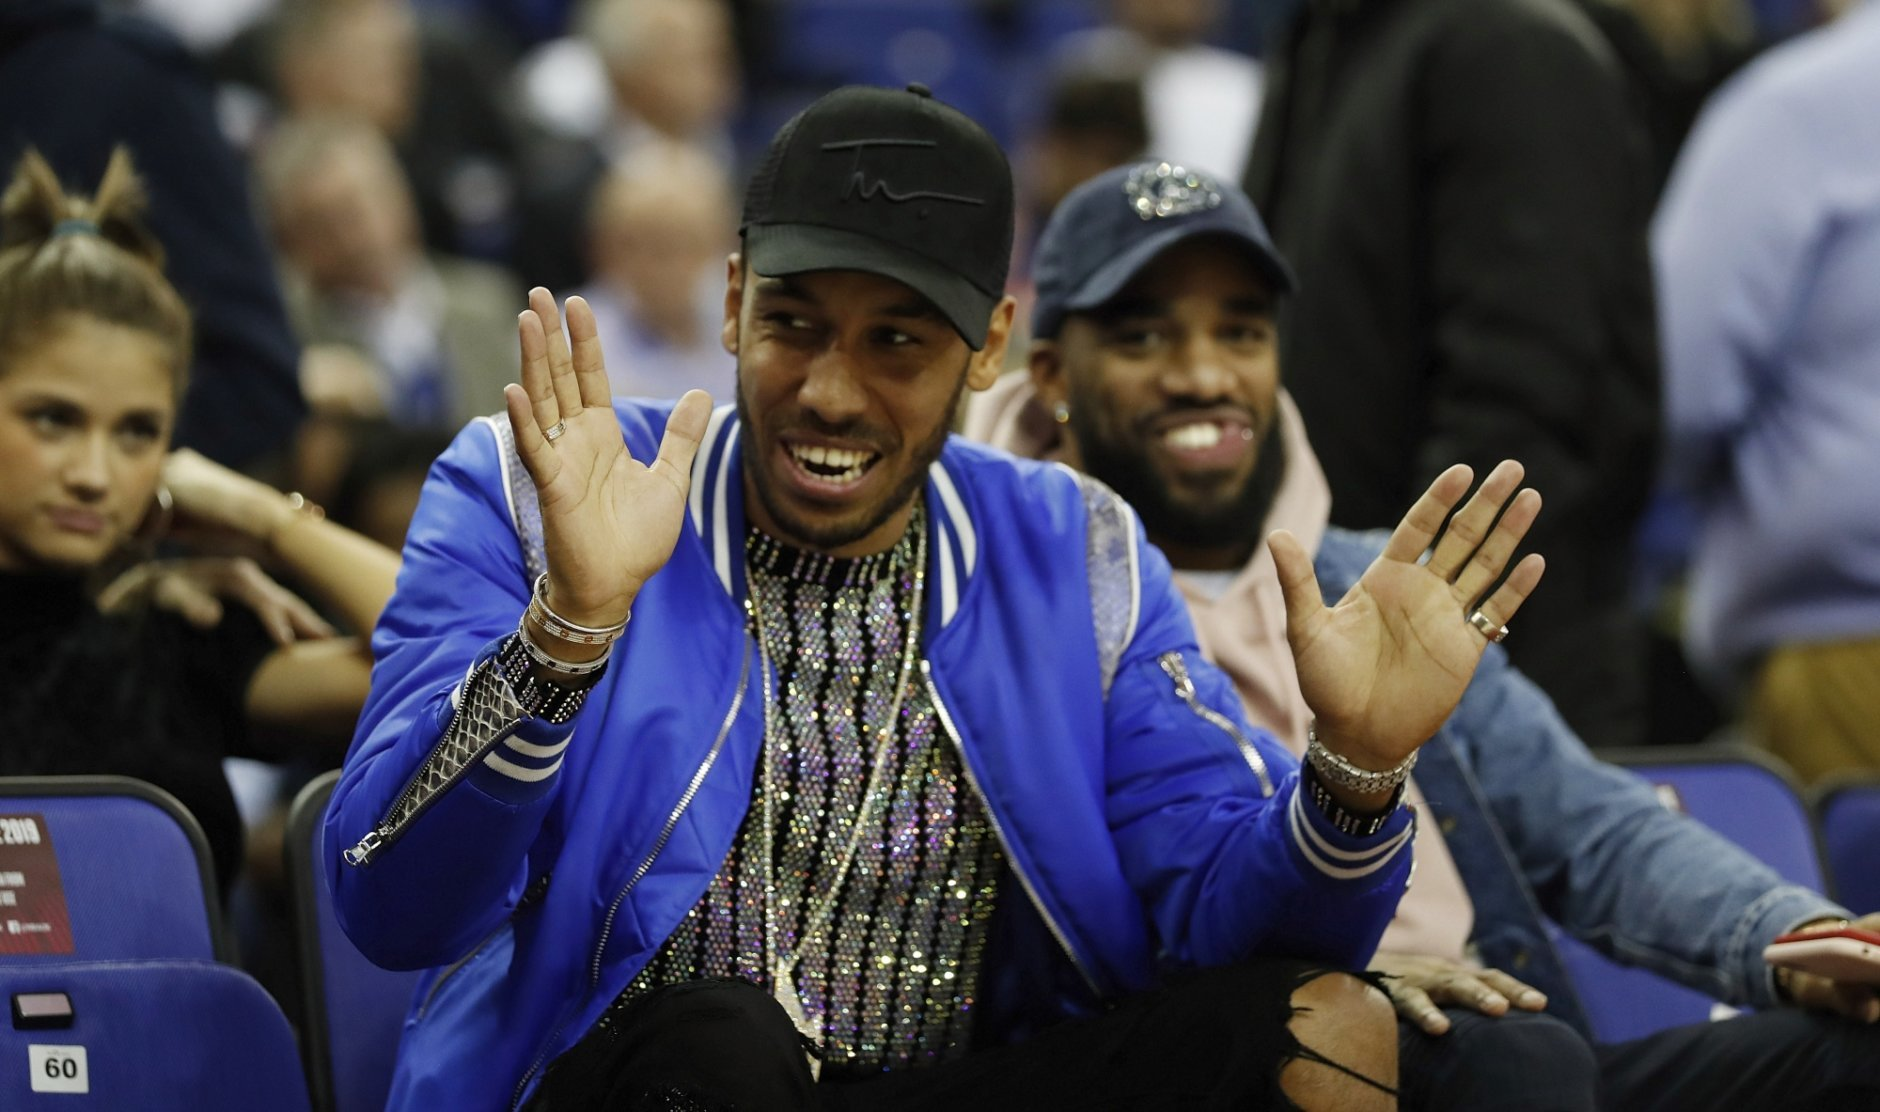 Arsenal player Pierre-Emerick Aubameyang gestures as he attends a NBA basketball game between New York Knicks and Washington Wizards at the O2 Arena, in London, Thursday, Jan.17, 2019. (AP Photo/Alastair Grant)